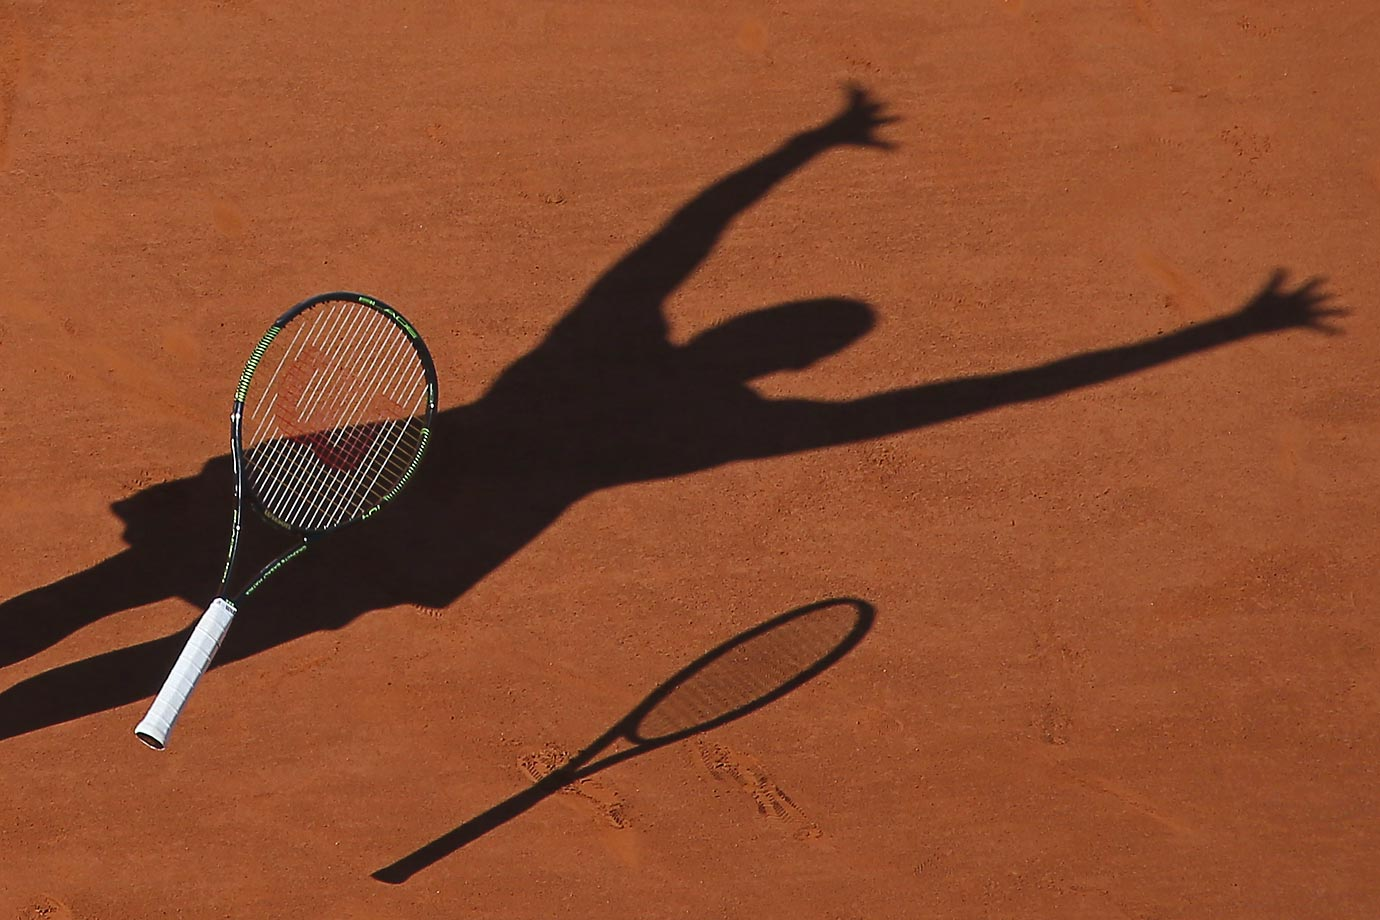 Seen through a shadow on the clay at the Roland Garros stadium in Paris is a victorious Serena Williams, who dropped her racket in celebration after beating Lucie Safarova in three sets, 6-3, 6-7, 6-2, to win the French Open on June 6.